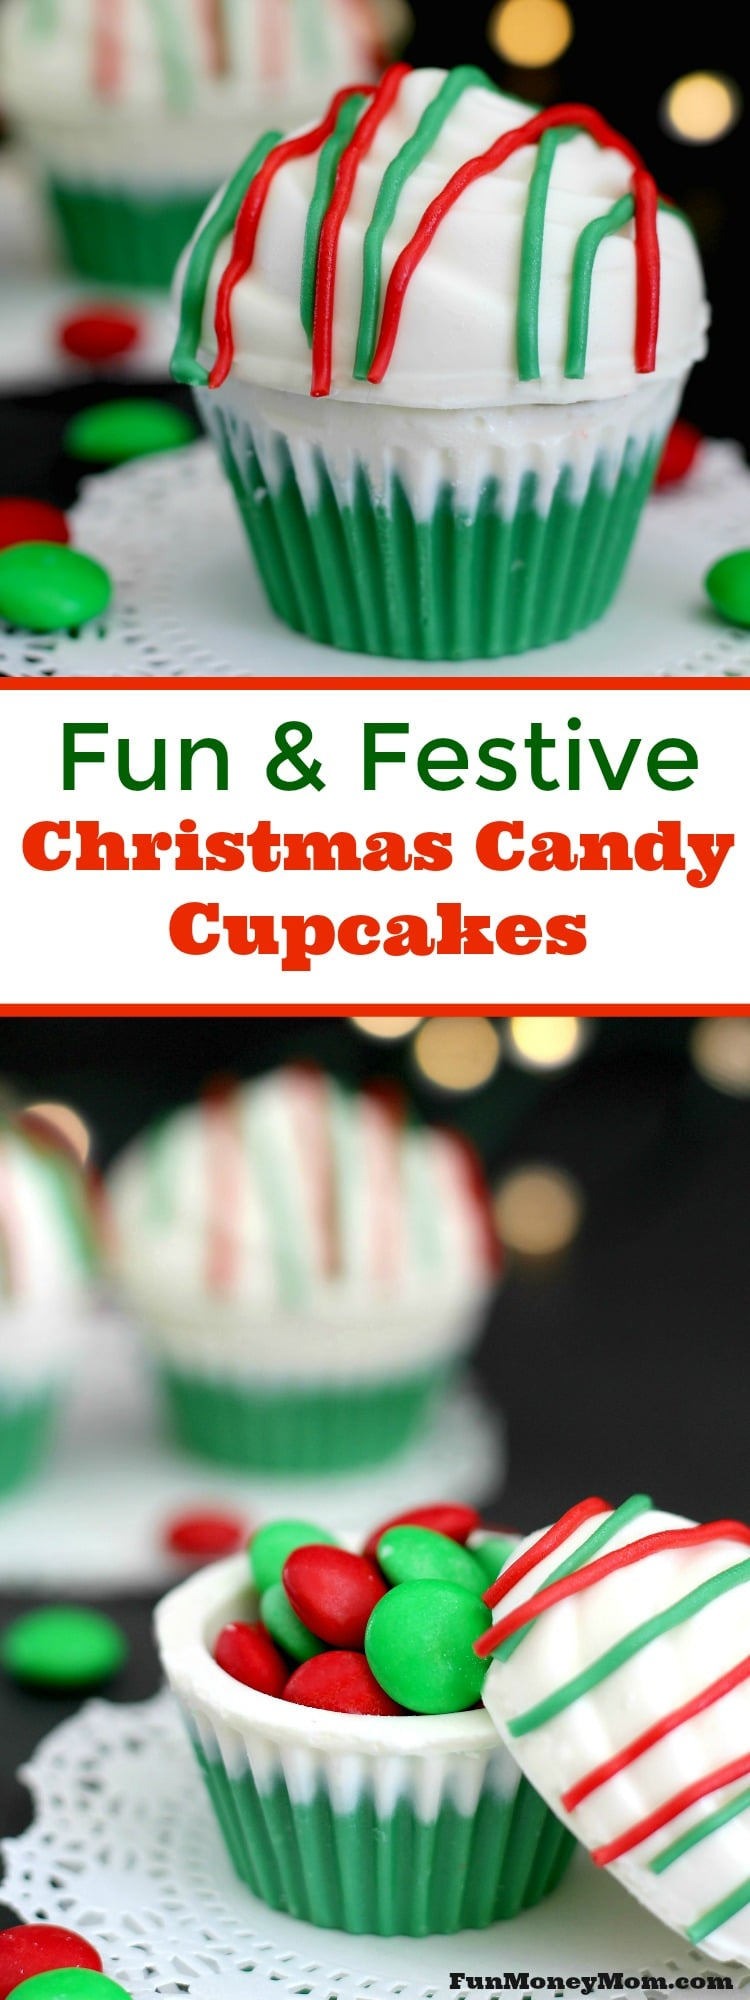 Looking for some fun but super easy Christmas treats? Why not make theseChristmas Candy Cupcakes filled with what else...more candy!